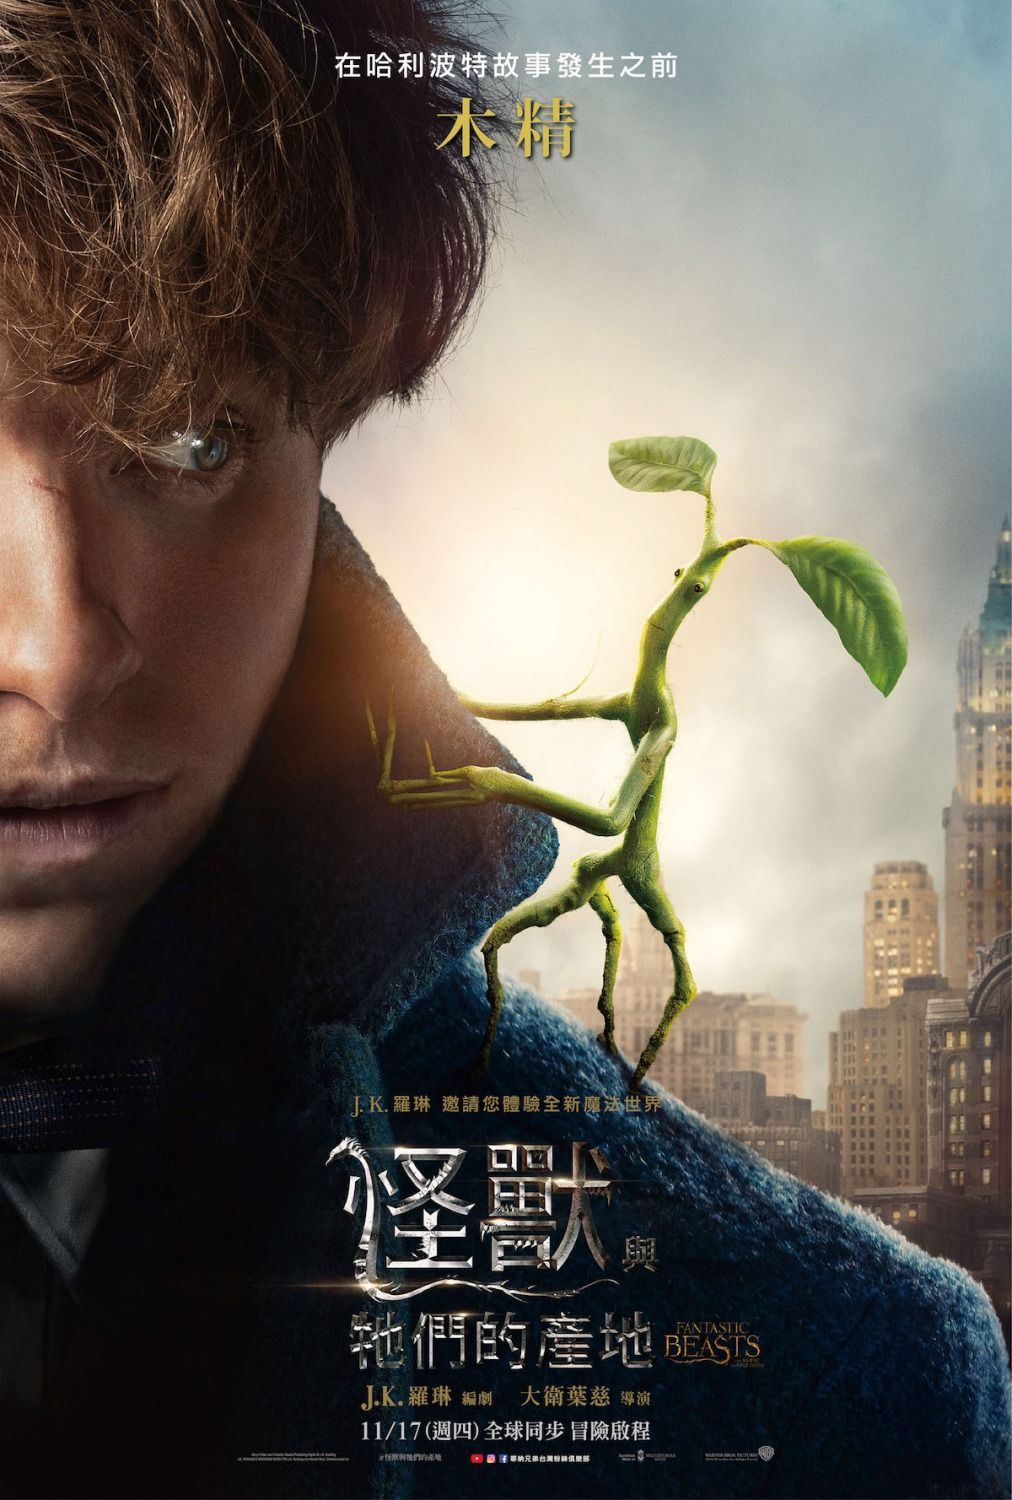 Fantastic Beasts And Where To Find Them(2016) Hd Wallpaper From  Gallsource